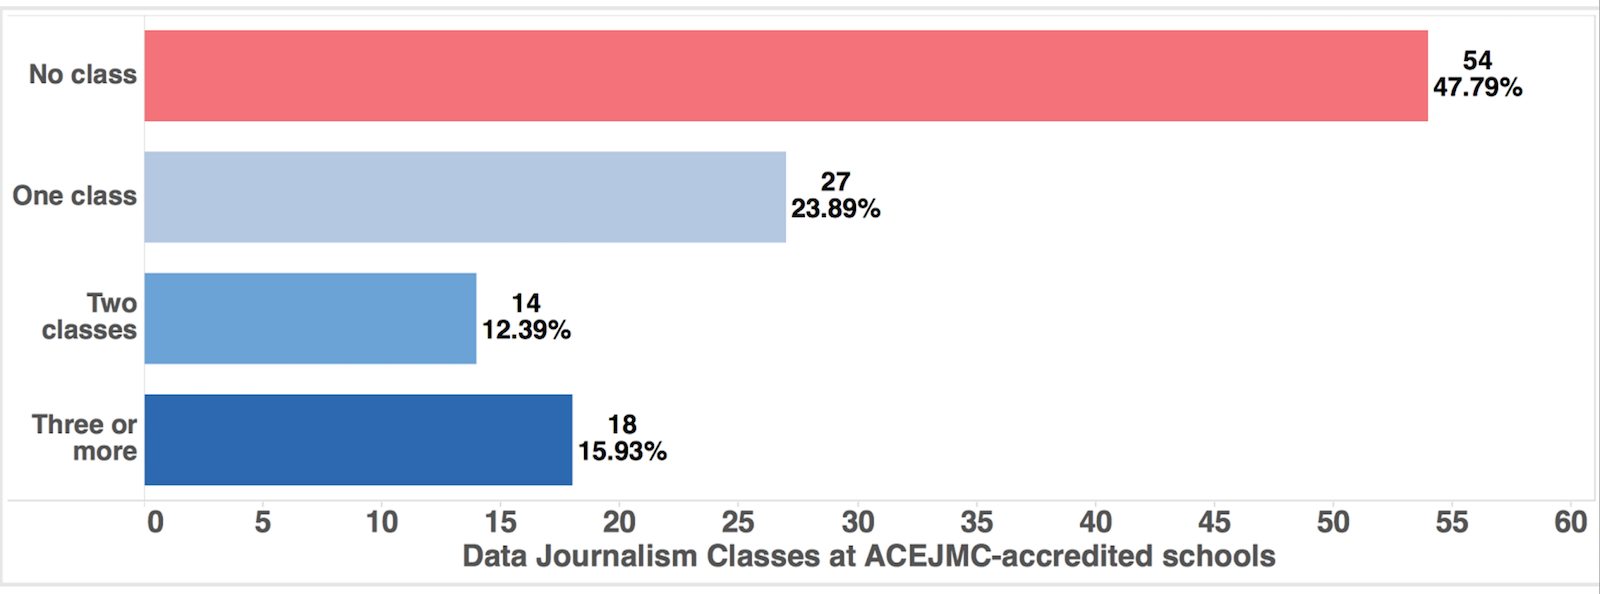 Data journalism classes offered at ACEJMC-accredited journalism schools.